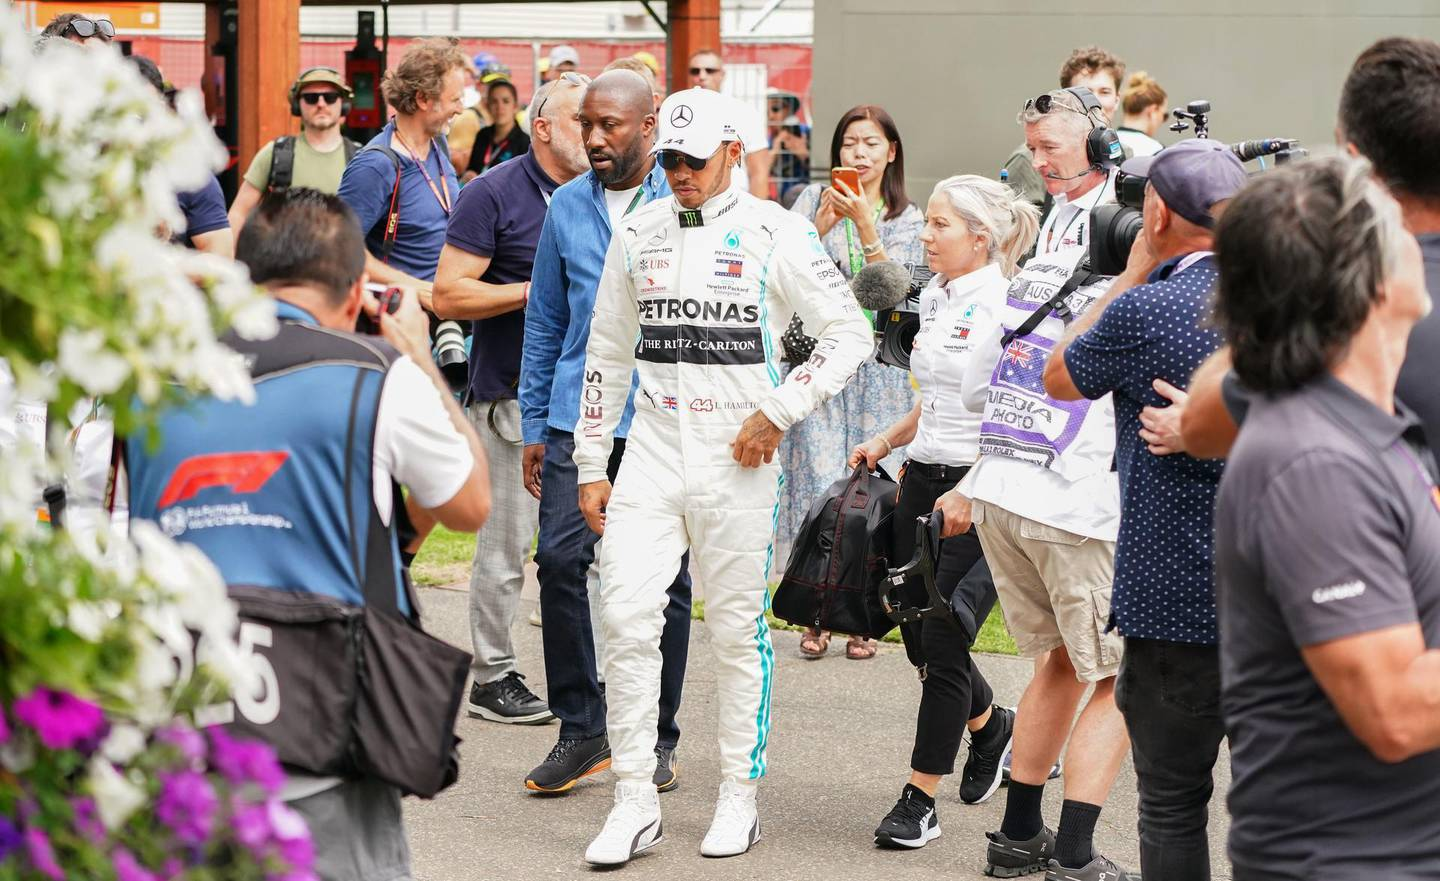 epa08287877 Lewis Hamilton (C) of Great Britain and Mercedes GP arrives at the Paddock ahead of the Formula 1 Australian Grand Prix 2020 at the the Albert Park Circuit in Melbourne, Australia, 12 March 2020.  EPA/SCOTT BARBOUR EDITORIAL USE ONLY AUSTRALIA AND NEW ZEALAND OUT